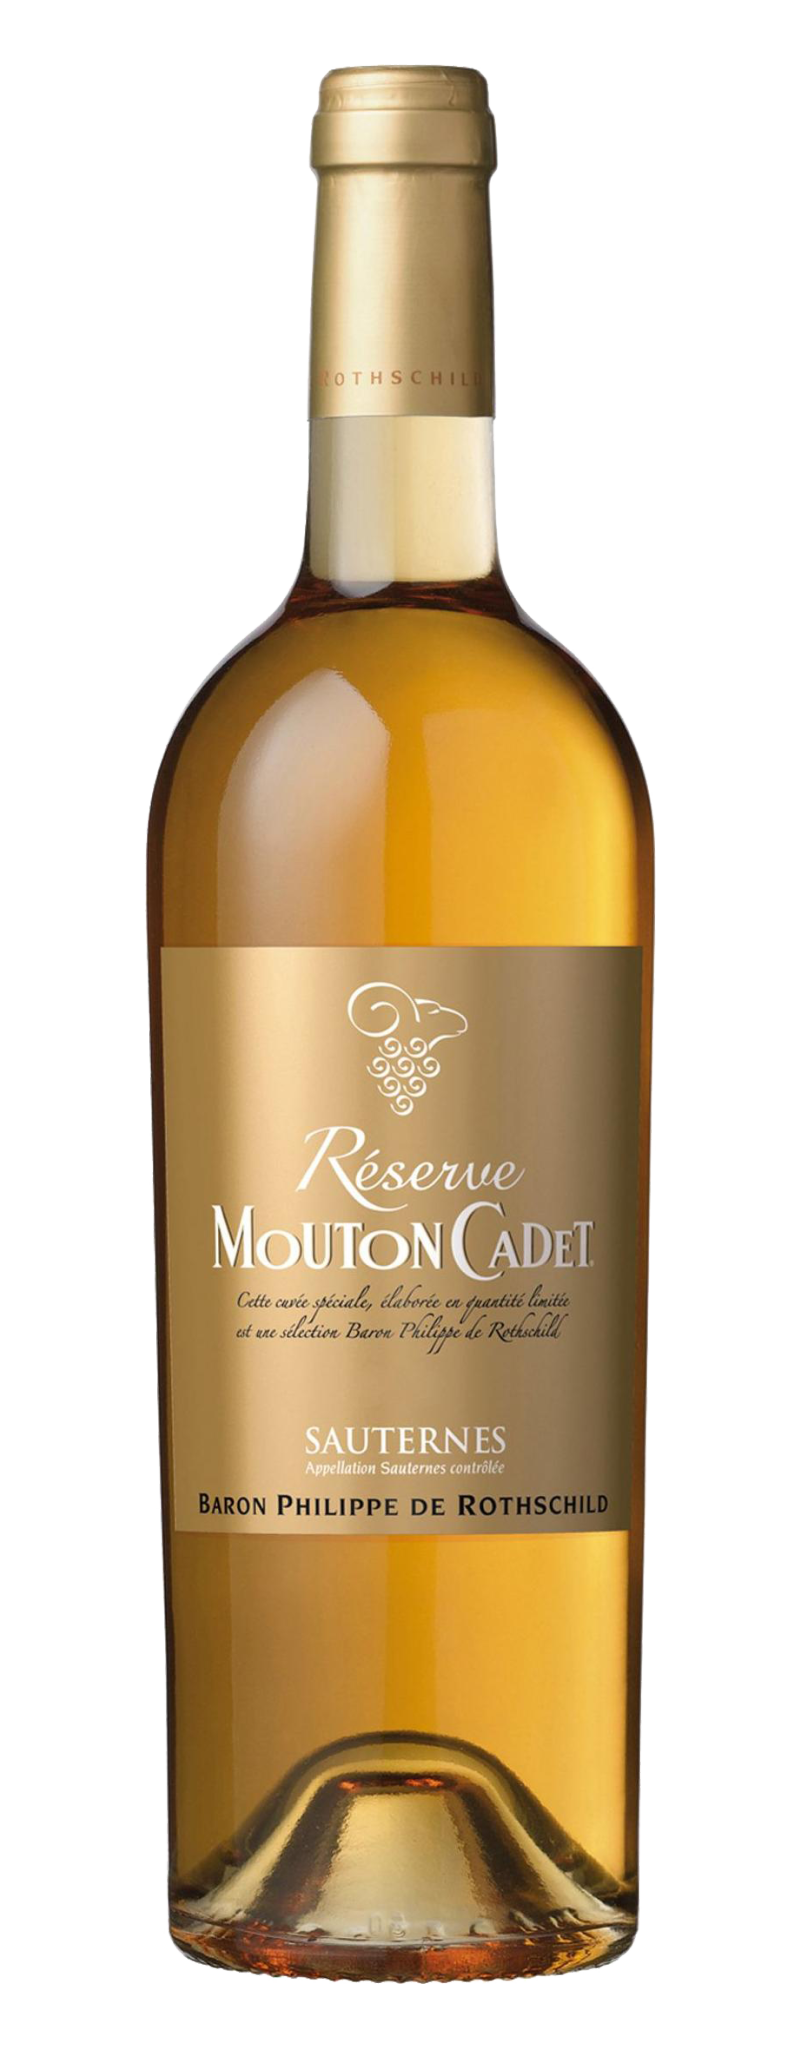 Rothschild - Mouton Cadet Reserves Sauternes 37,5 cL  - 375ml